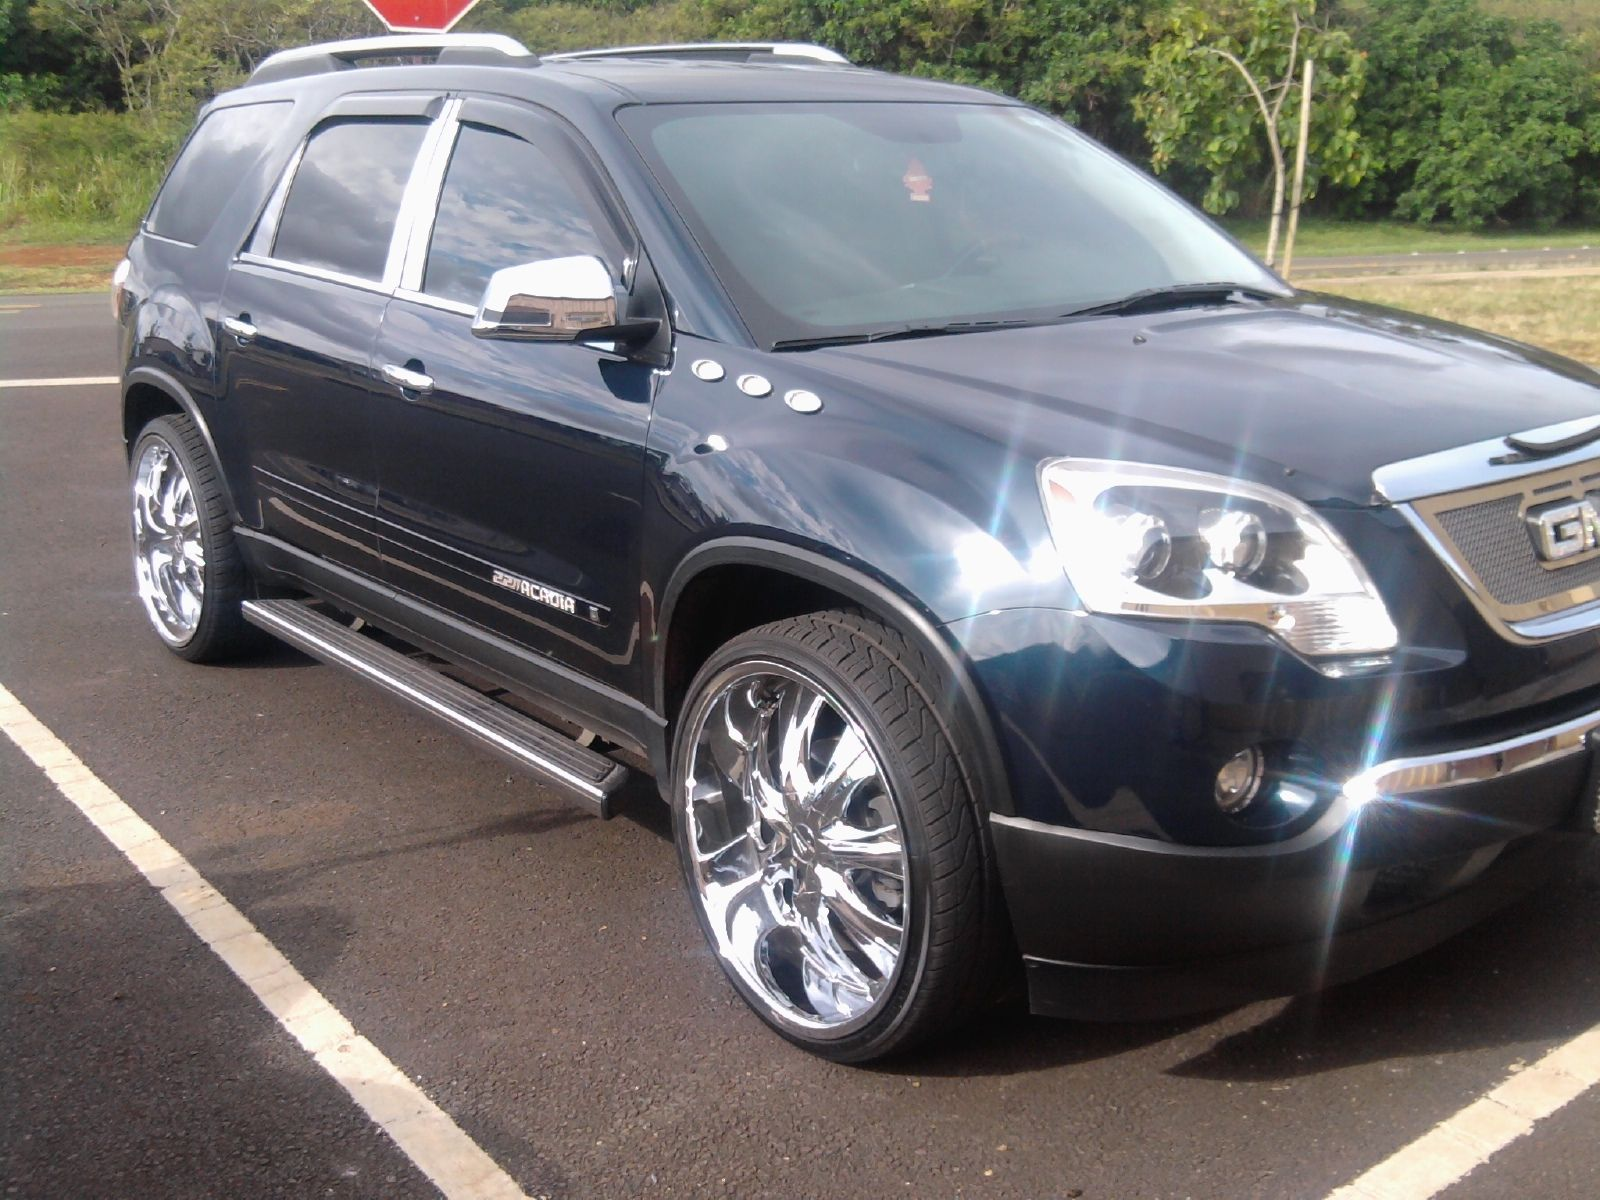 gmc acadia with rims rolo24 s 2008 gmc acadia jl car collection rh pinterest com 08 gmc acadia parts gmc acadia parts diagrams [ 1600 x 1200 Pixel ]